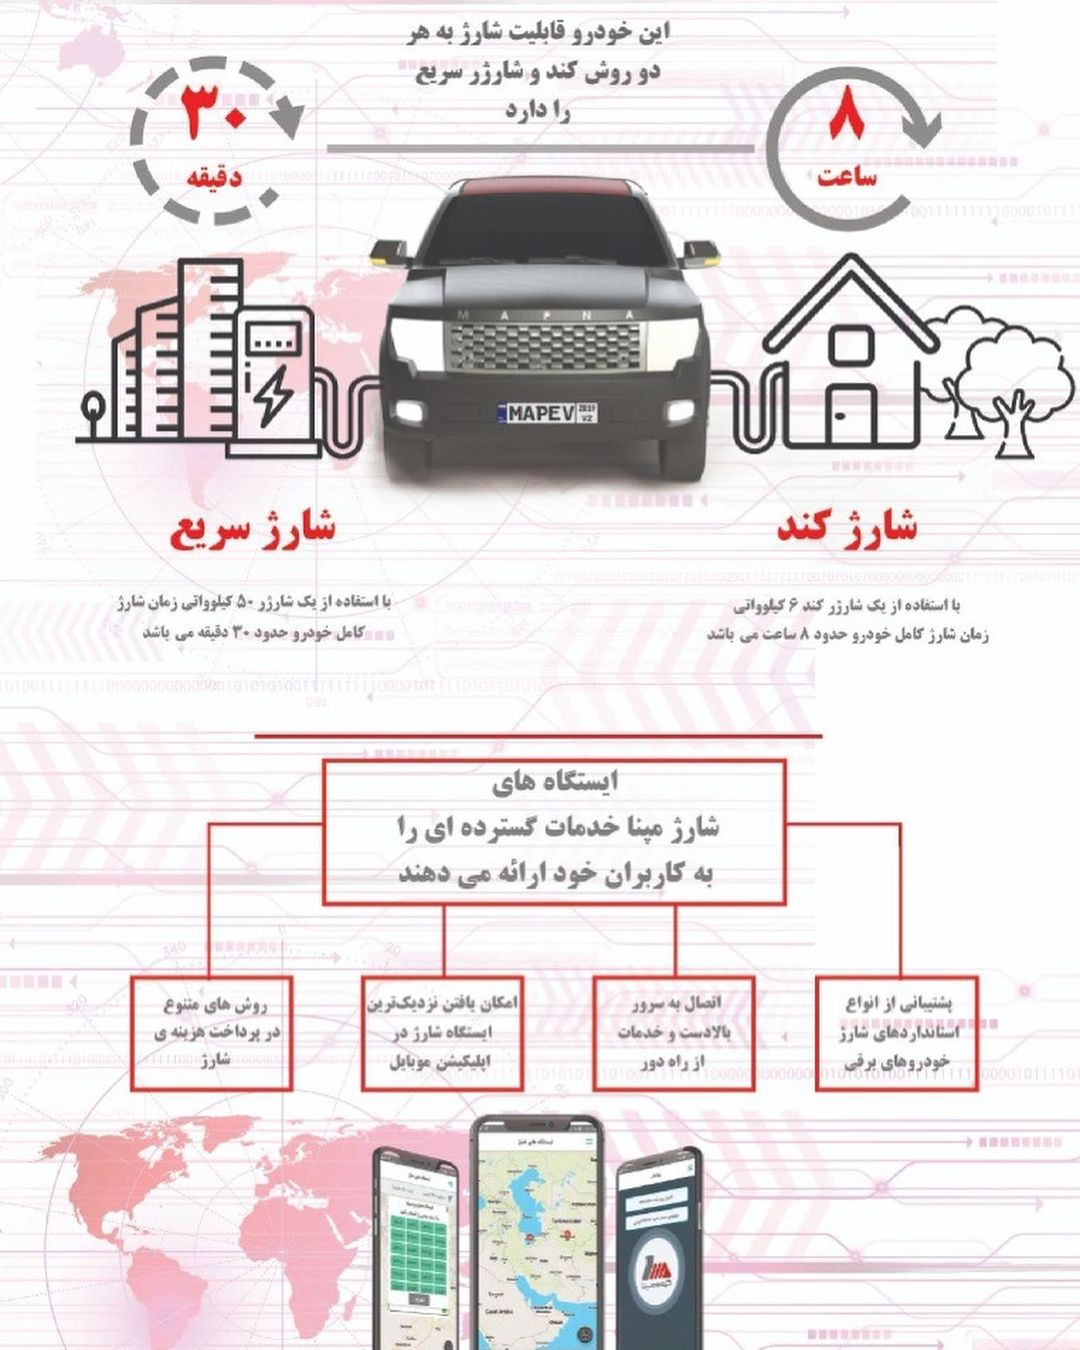 1617035294 653 The first Mapna all electric pickup without a plan to launch The first Mapna all-electric pickup without a plan to launch was introduced 6